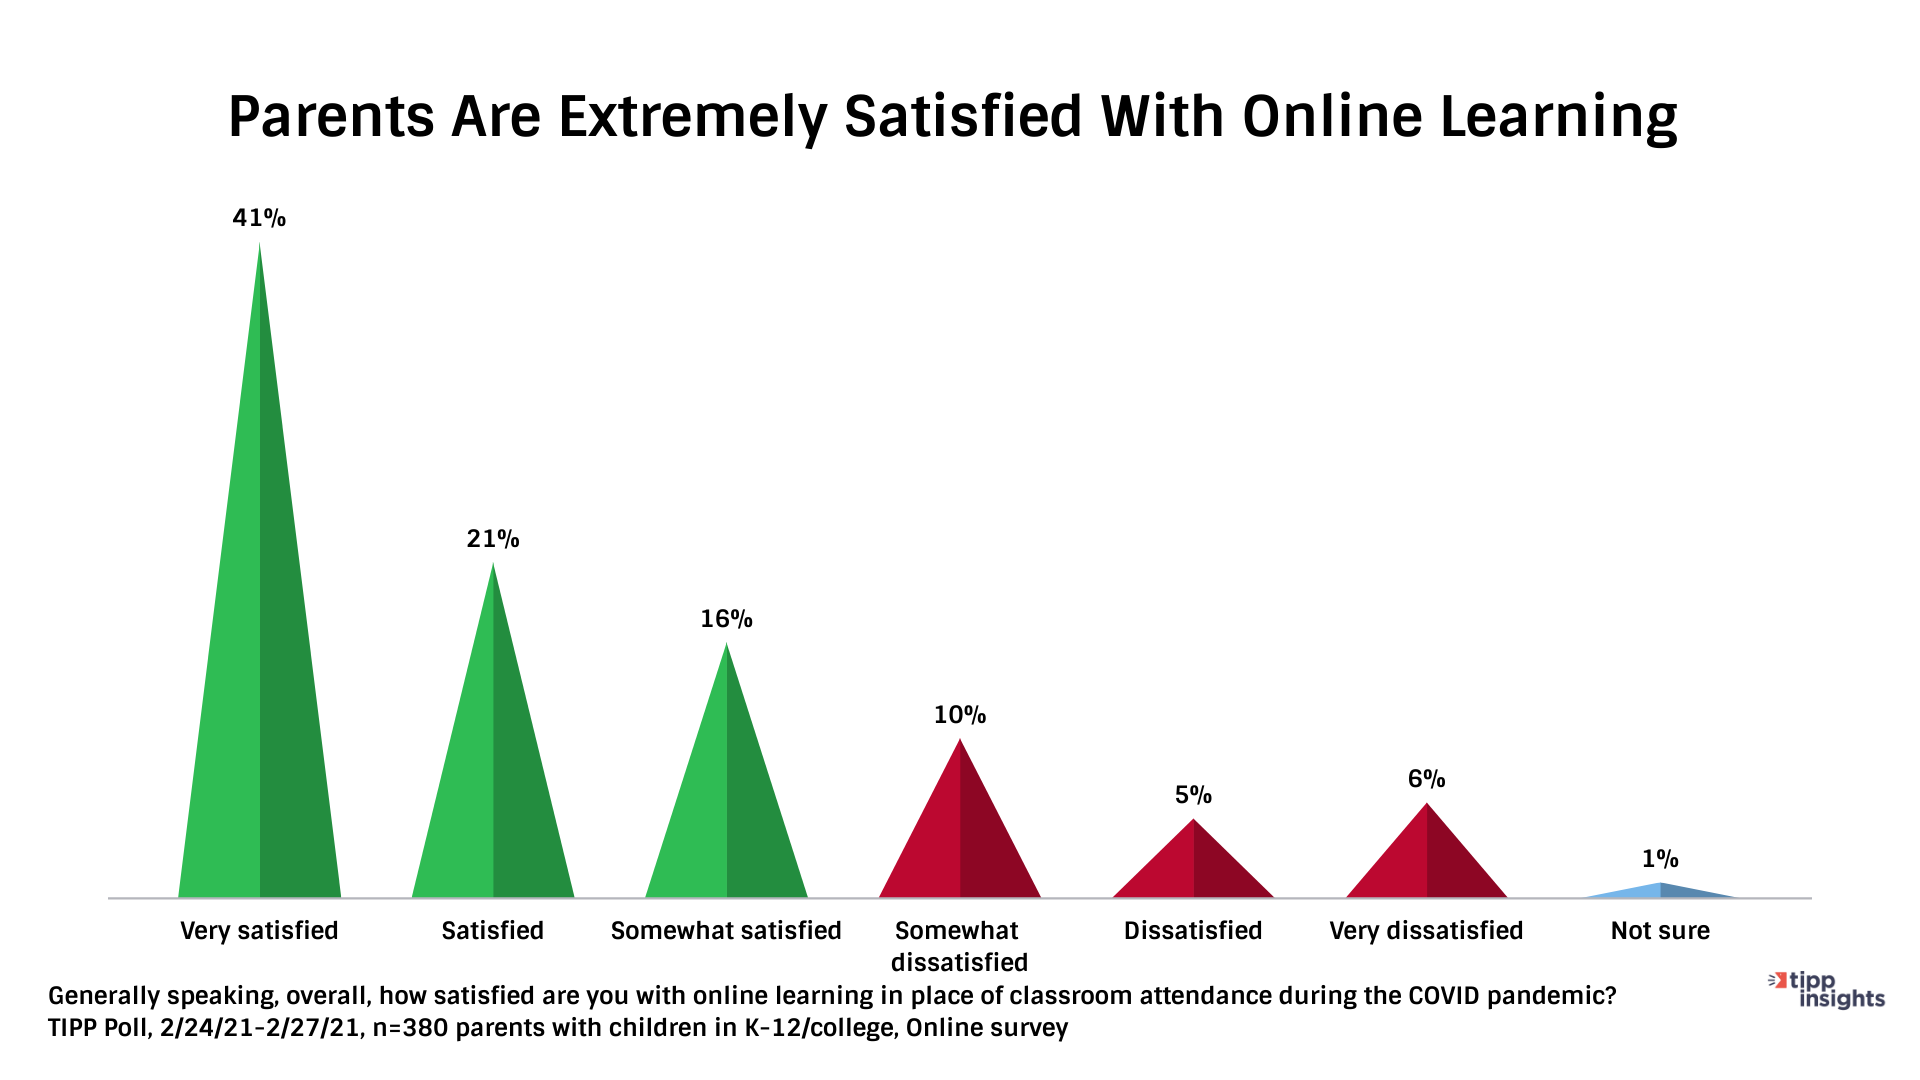 TIPP Poll Results, American Parents satisifaction with online learning